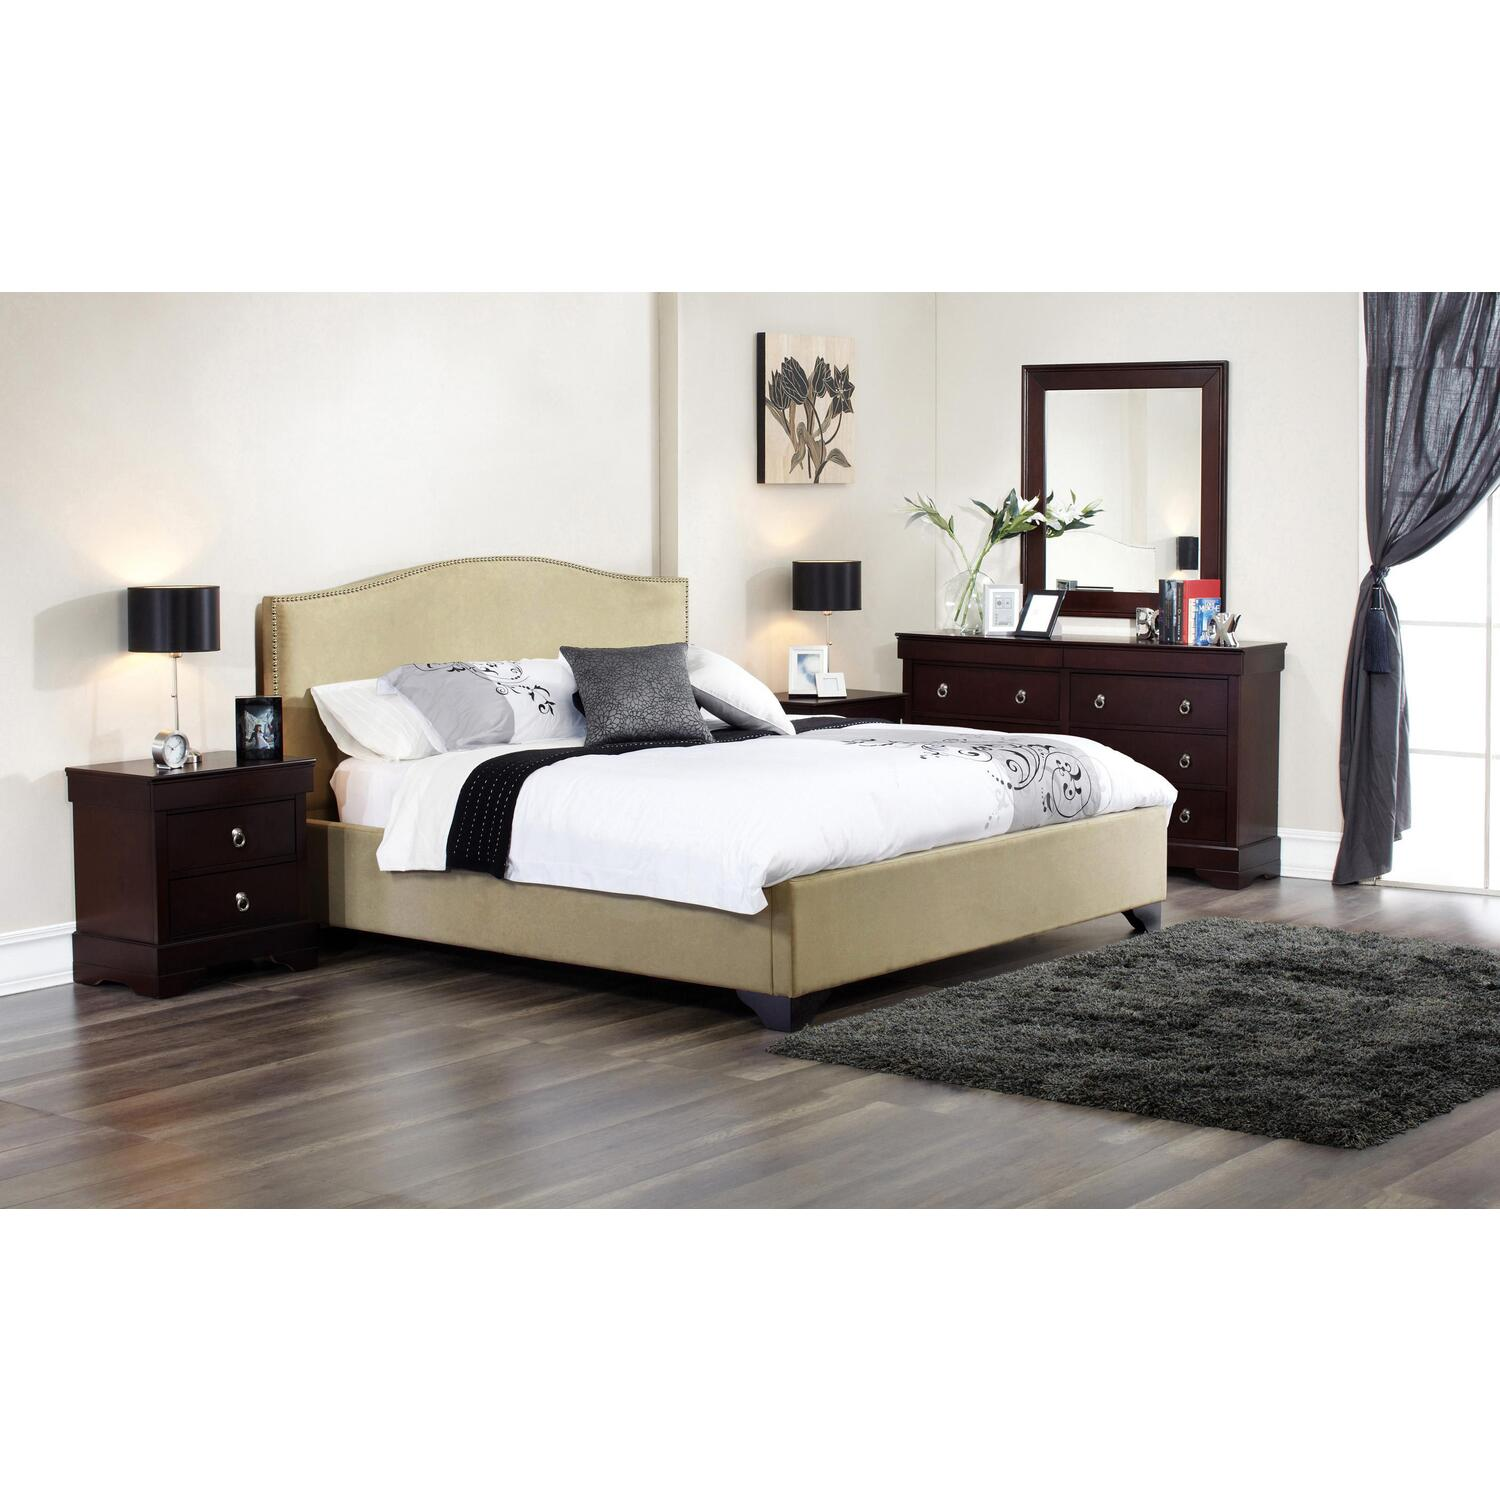 Lifestyle Solutions Magnolia Bedroom Set By Oj Commerce Mgl 4pq6 Cp Set 1